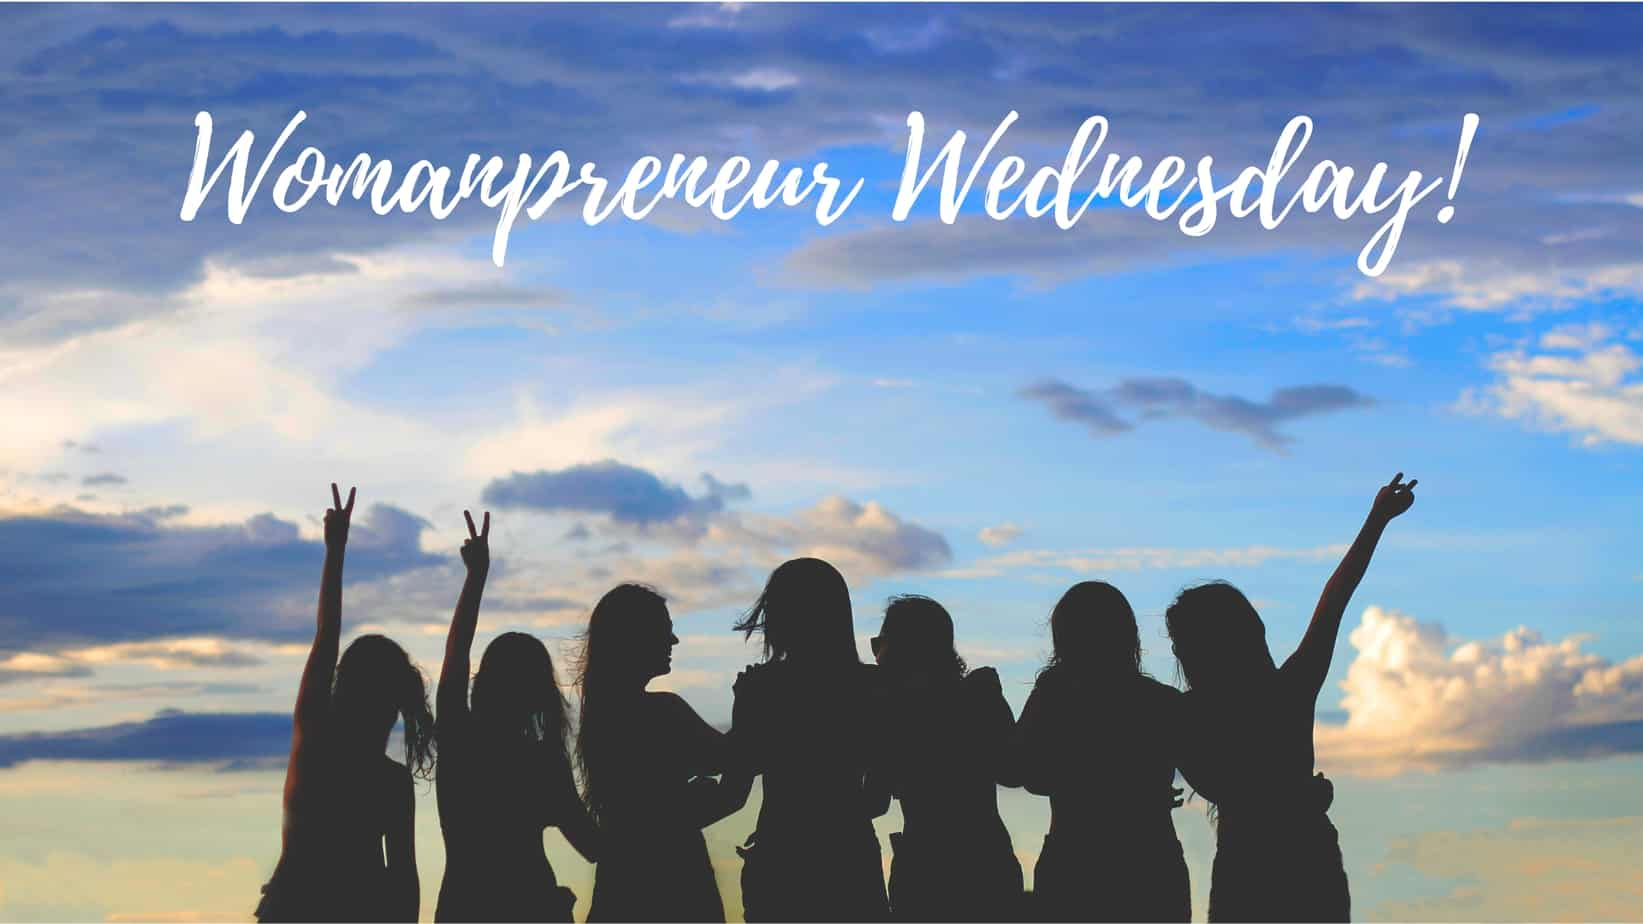 Welcome to Womanpreneur Wednesday!